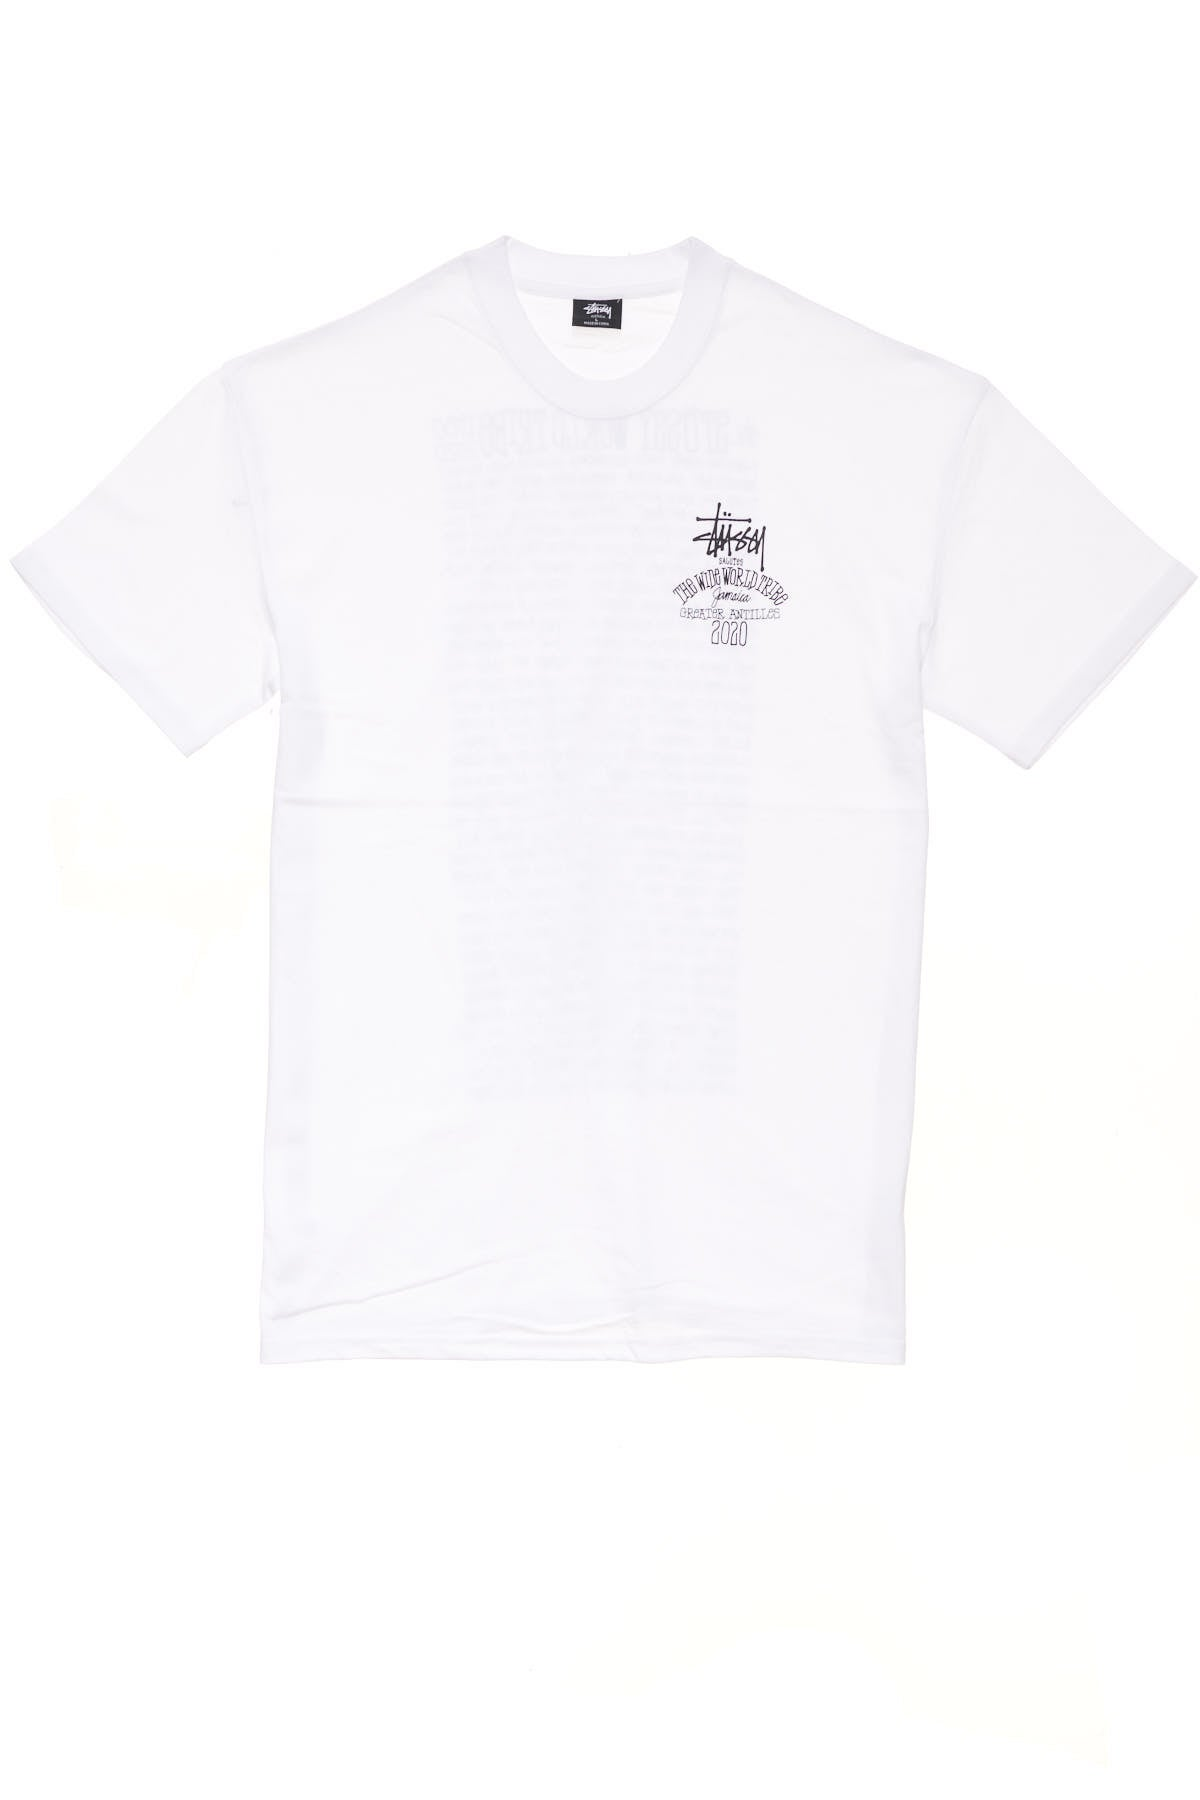 Jamaica World Tribe SS Tee